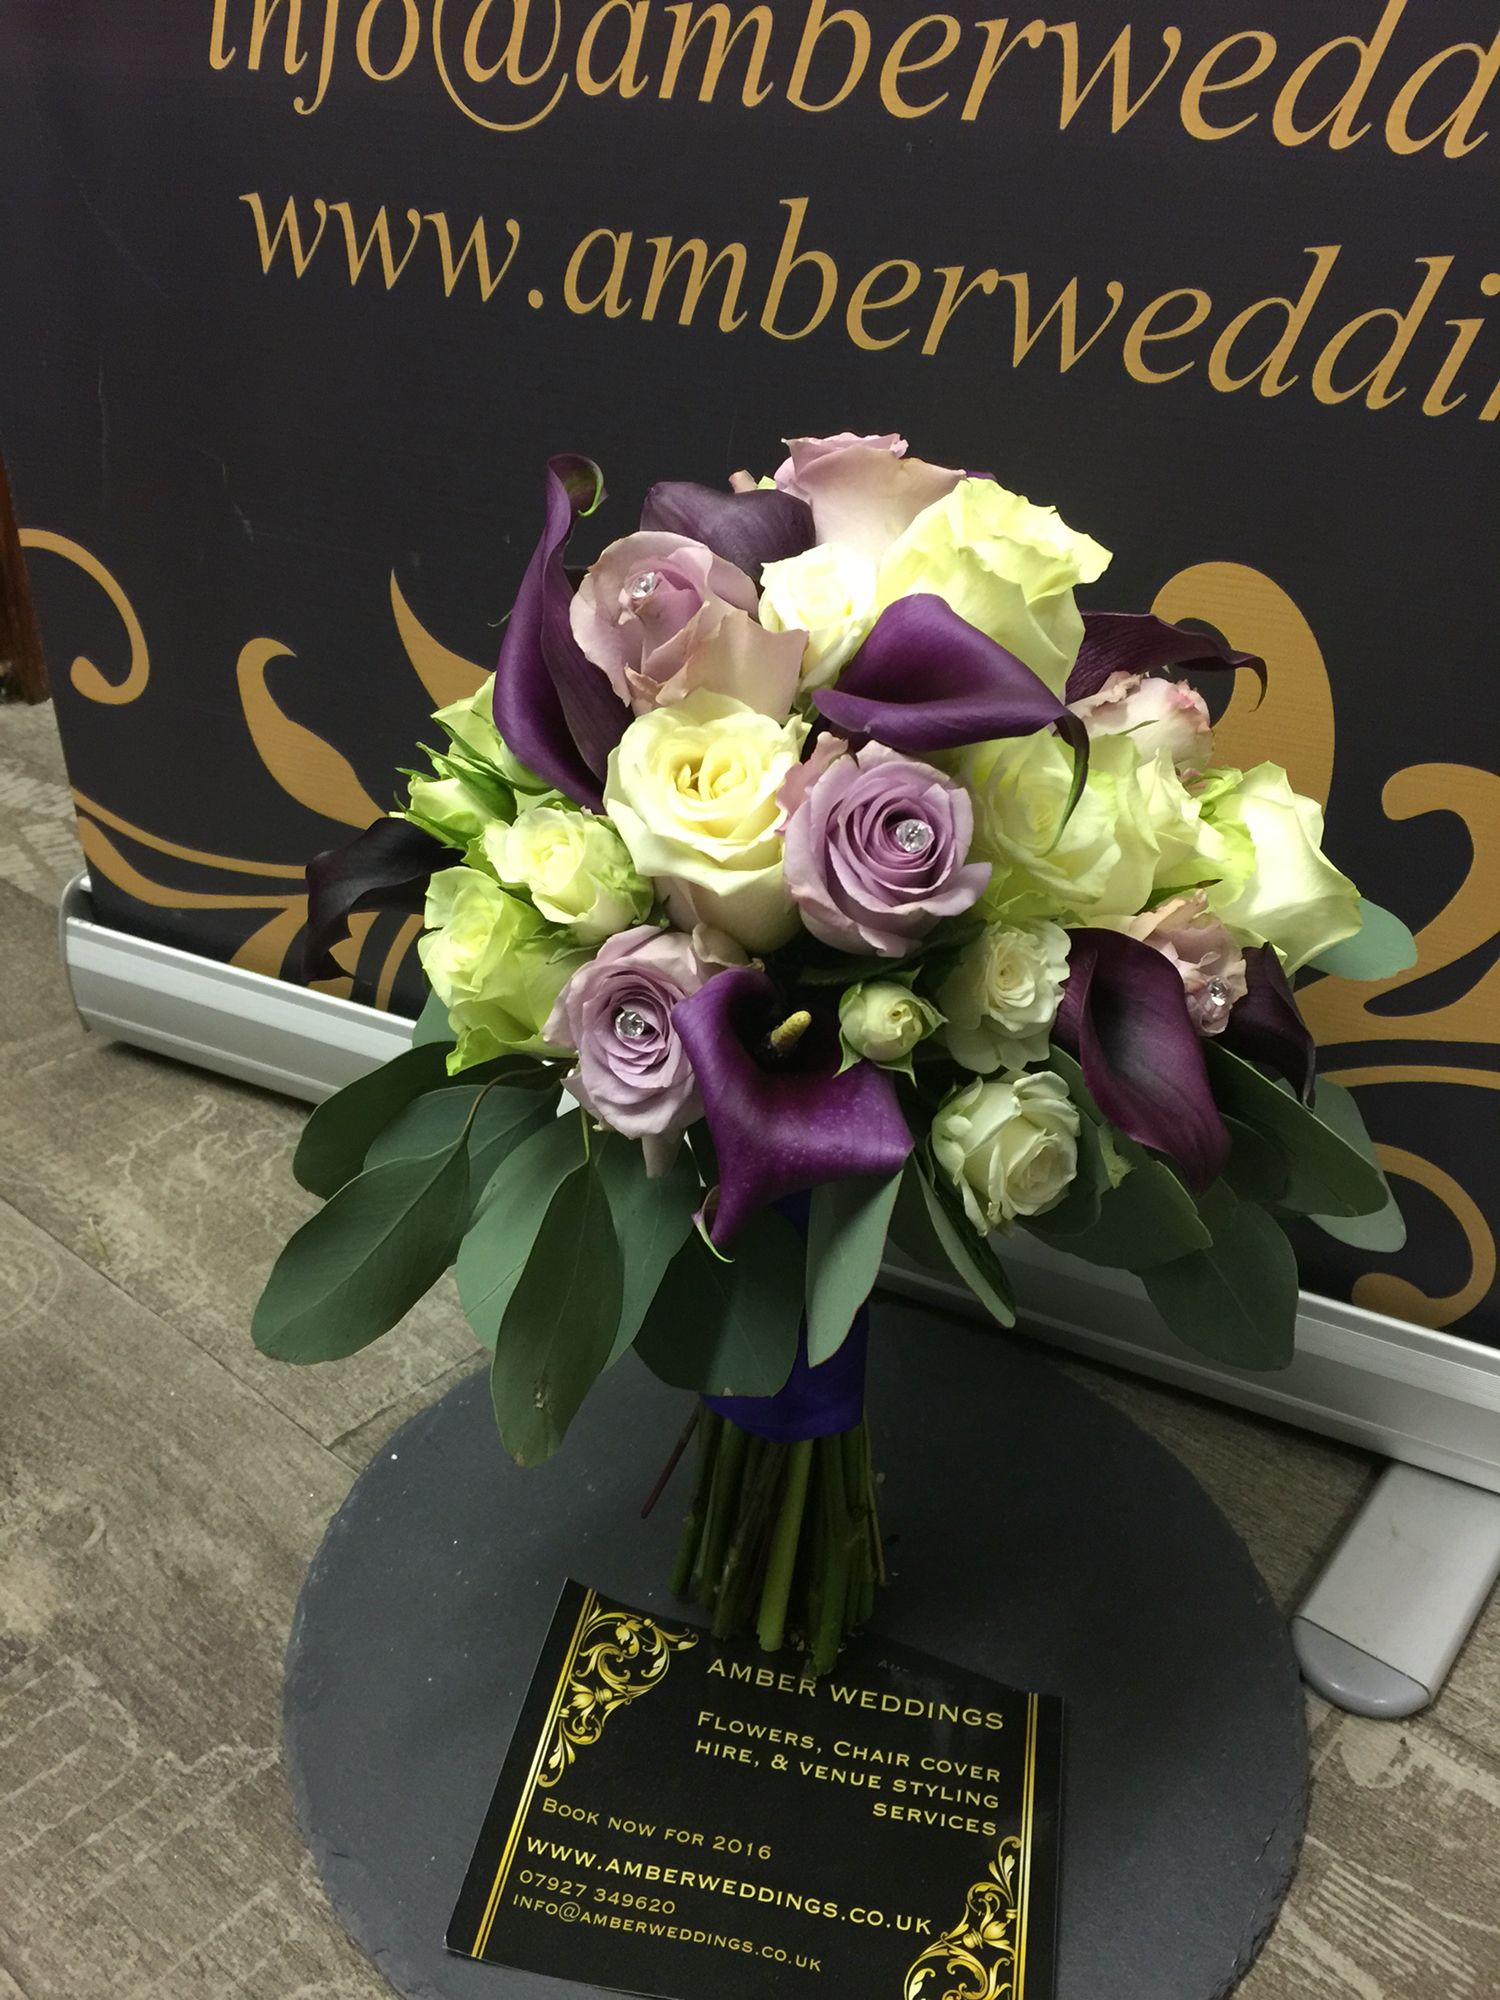 Bridal flowers for wedding at bedford barns shades of purples and bridal flowers for wedding at bedford barns shades of purples and ivory izmirmasajfo Choice Image